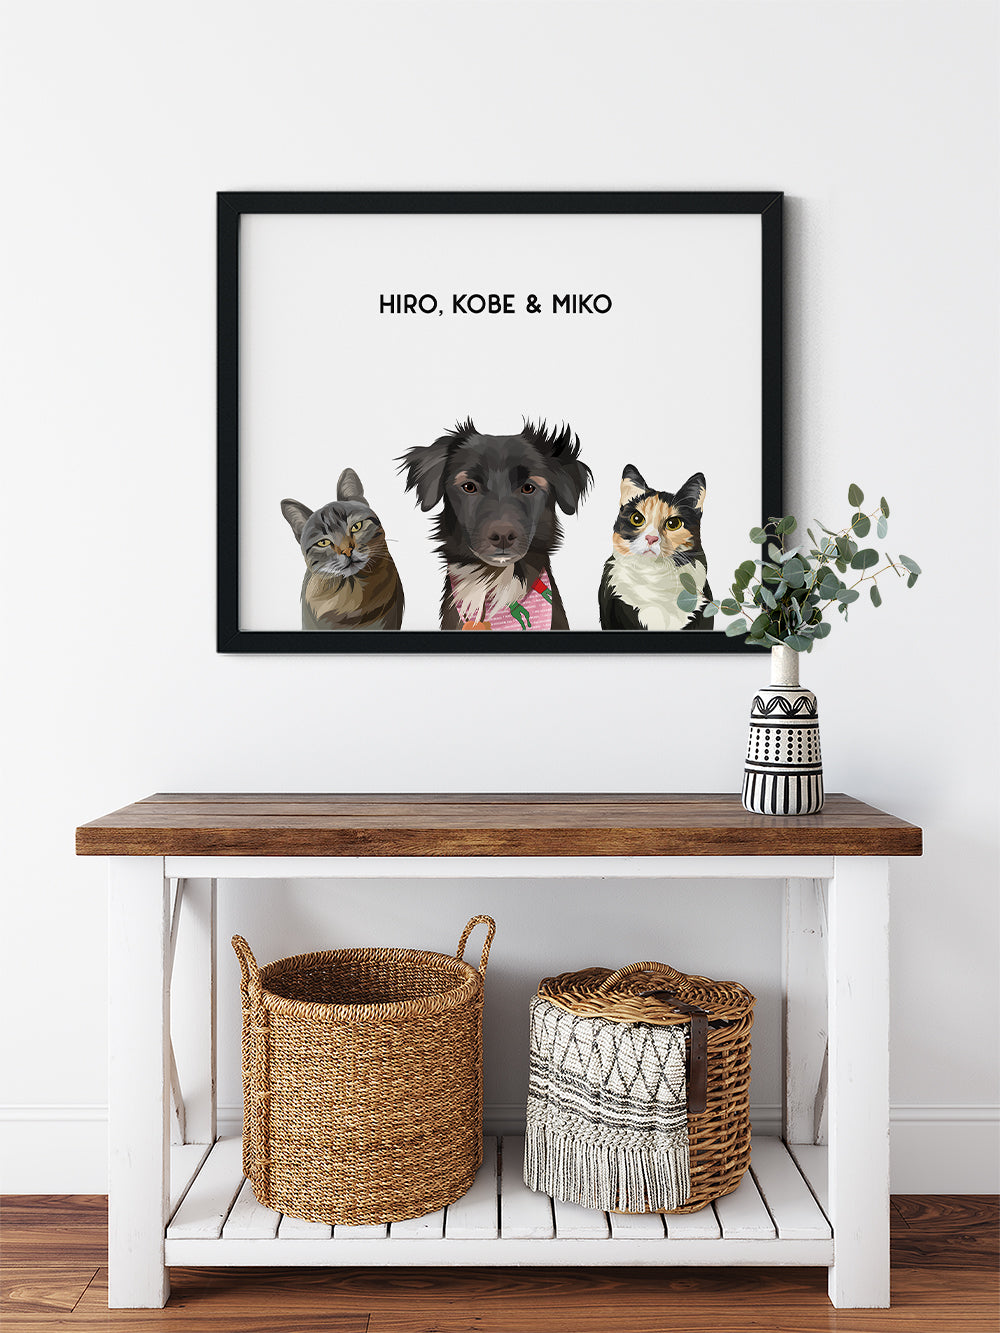 Trio custom framed pet portrait of a cat, dog and cat on cloud white background with black frame. Personalized name of cat, dog and cat in black font.